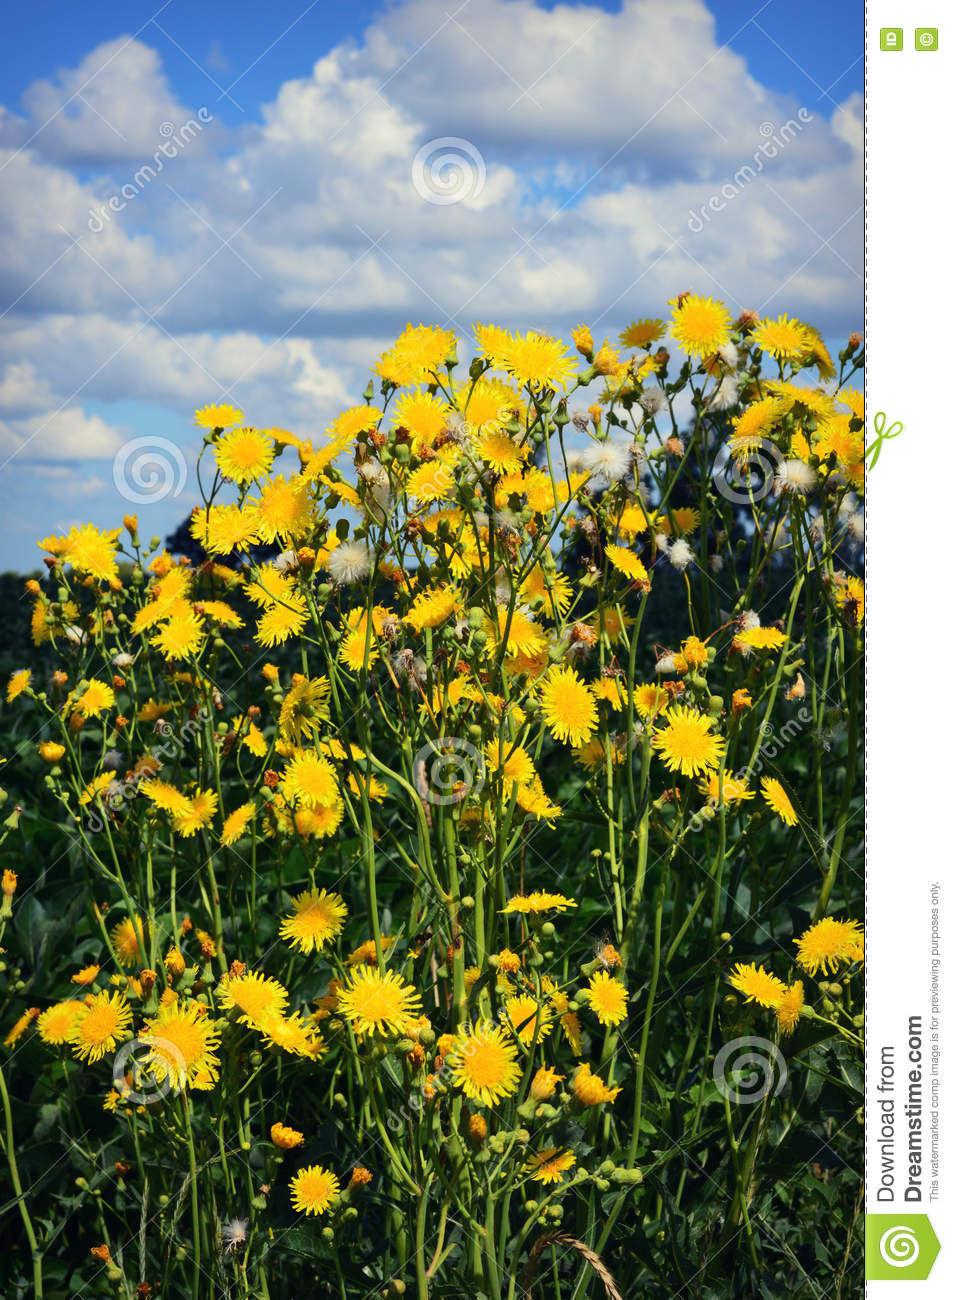 Field hawkweed stock image image of growing background 74511791 tall yellow flowers that look similar to dandelions but are called field hawkweed growing tall against a blue sky puffy white cloud background mightylinksfo